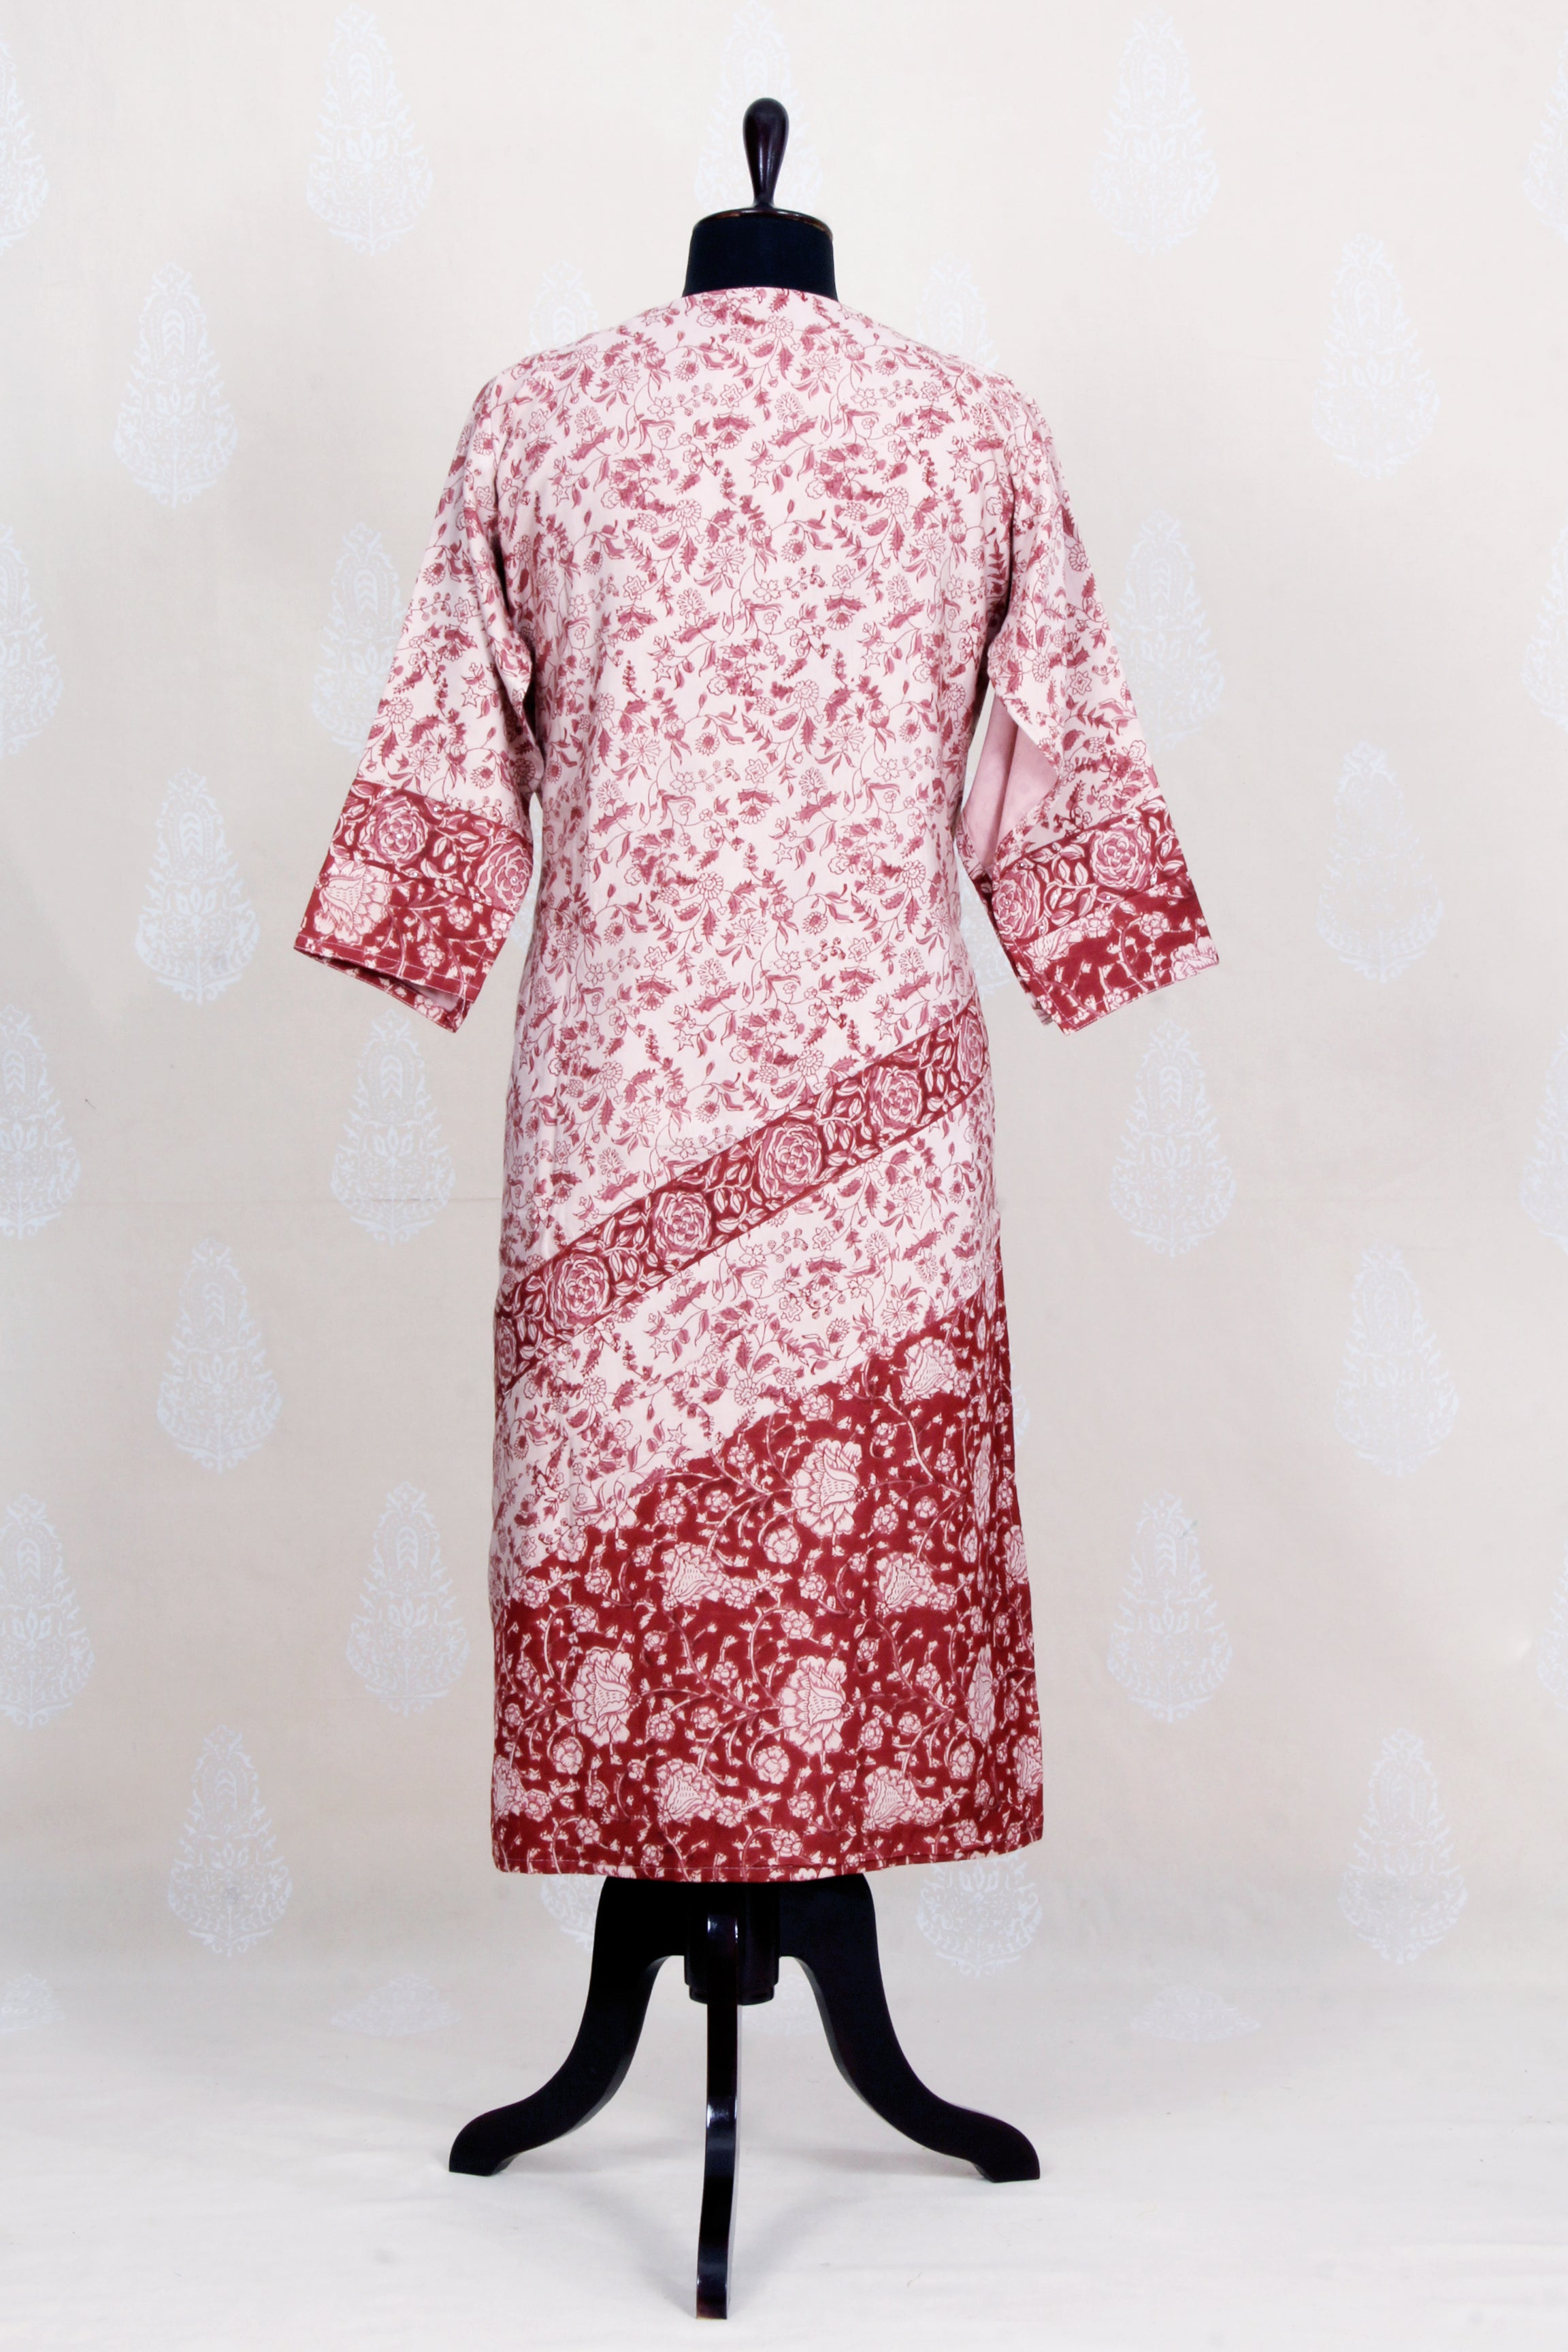 Hand Block Printed Silk Semi Stitched Kurtha In Organic Dye -madder - Tina Eapen Design Studio